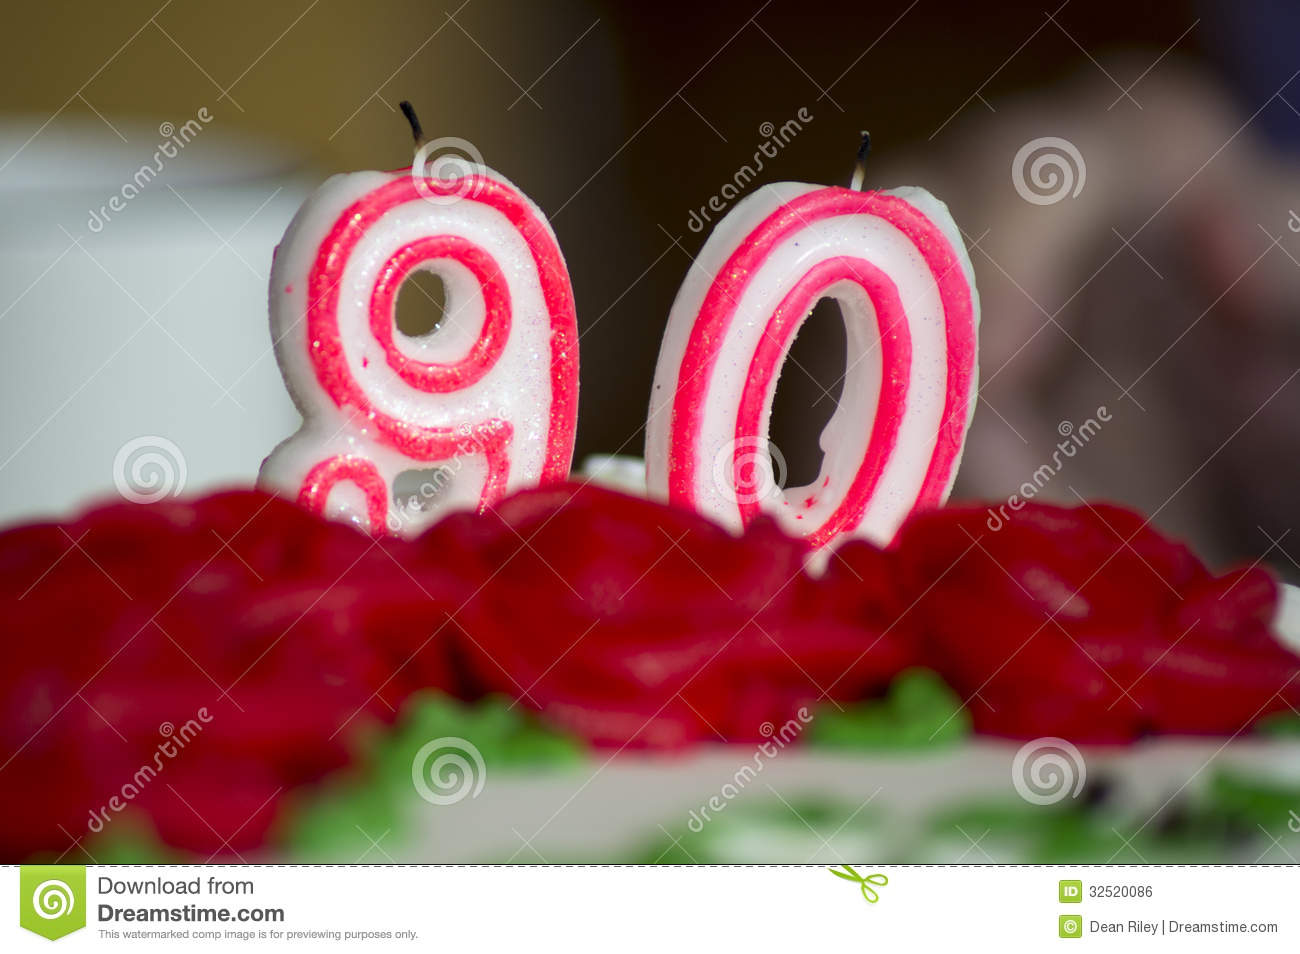 90th Birthday Cake Candles Royalty Free Stock Image